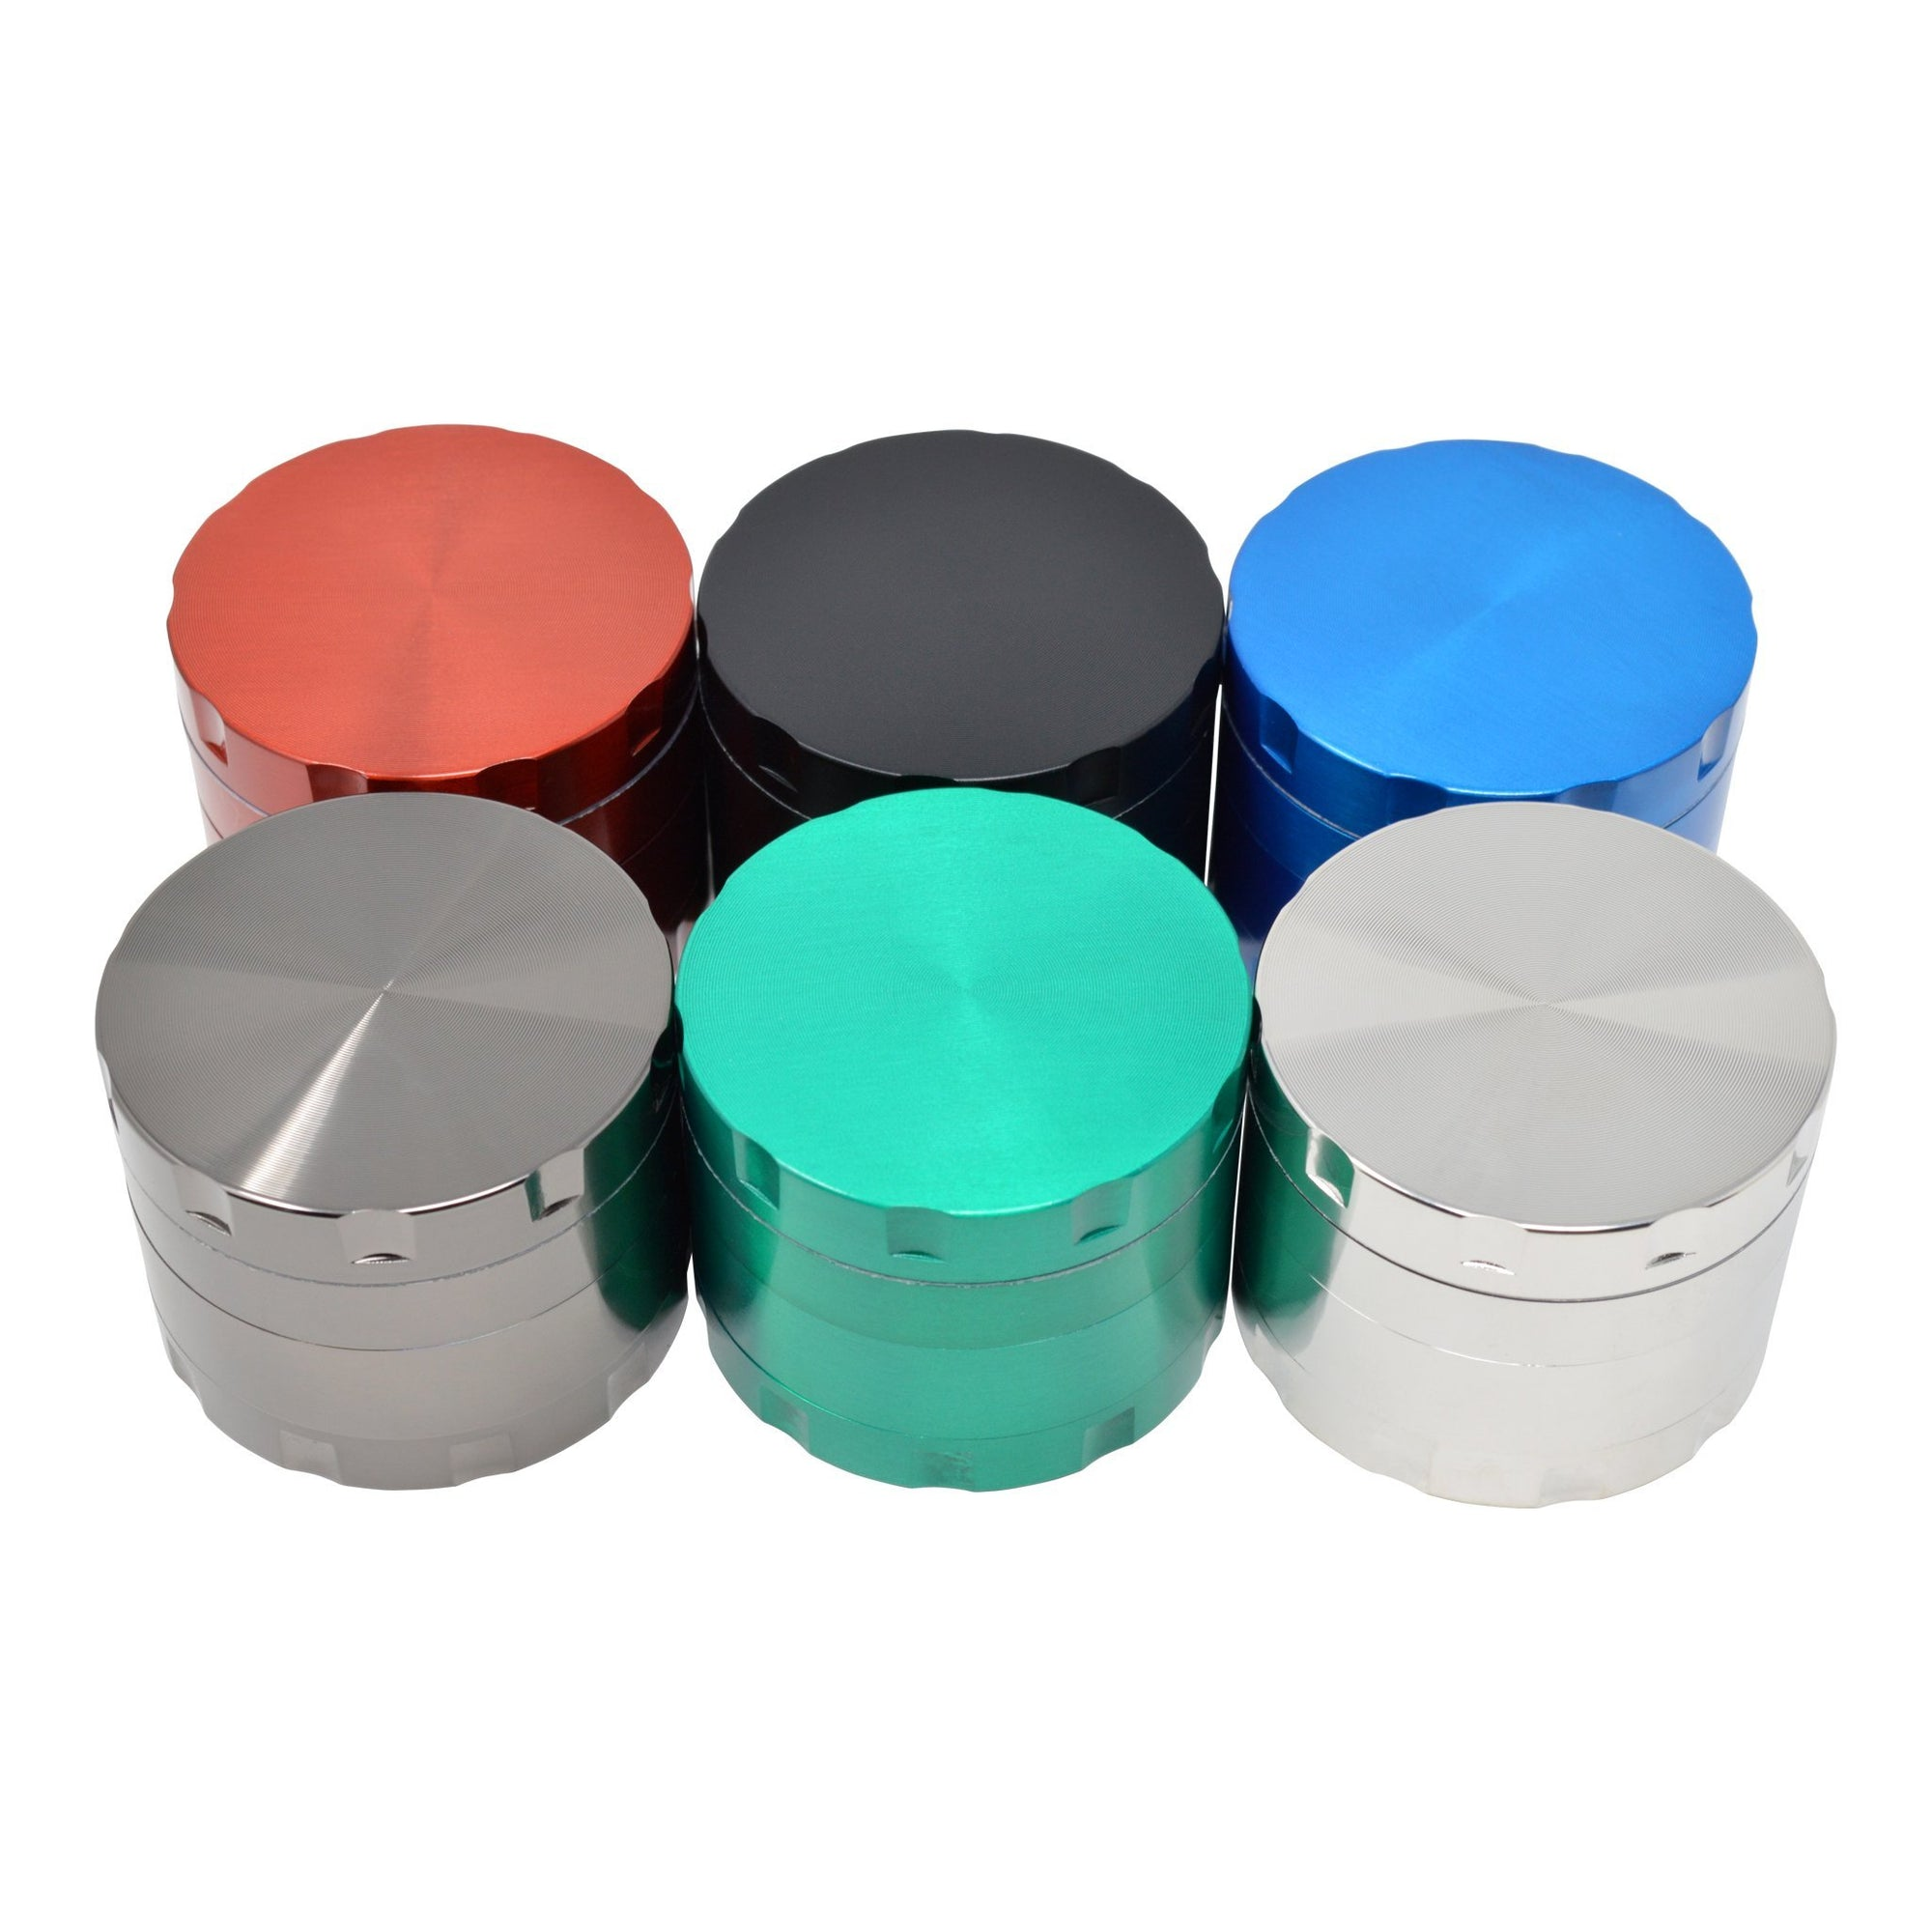 High angle shot of 6 closed 48mm grinder smoking accessory lid with smooth surface ridges on the side